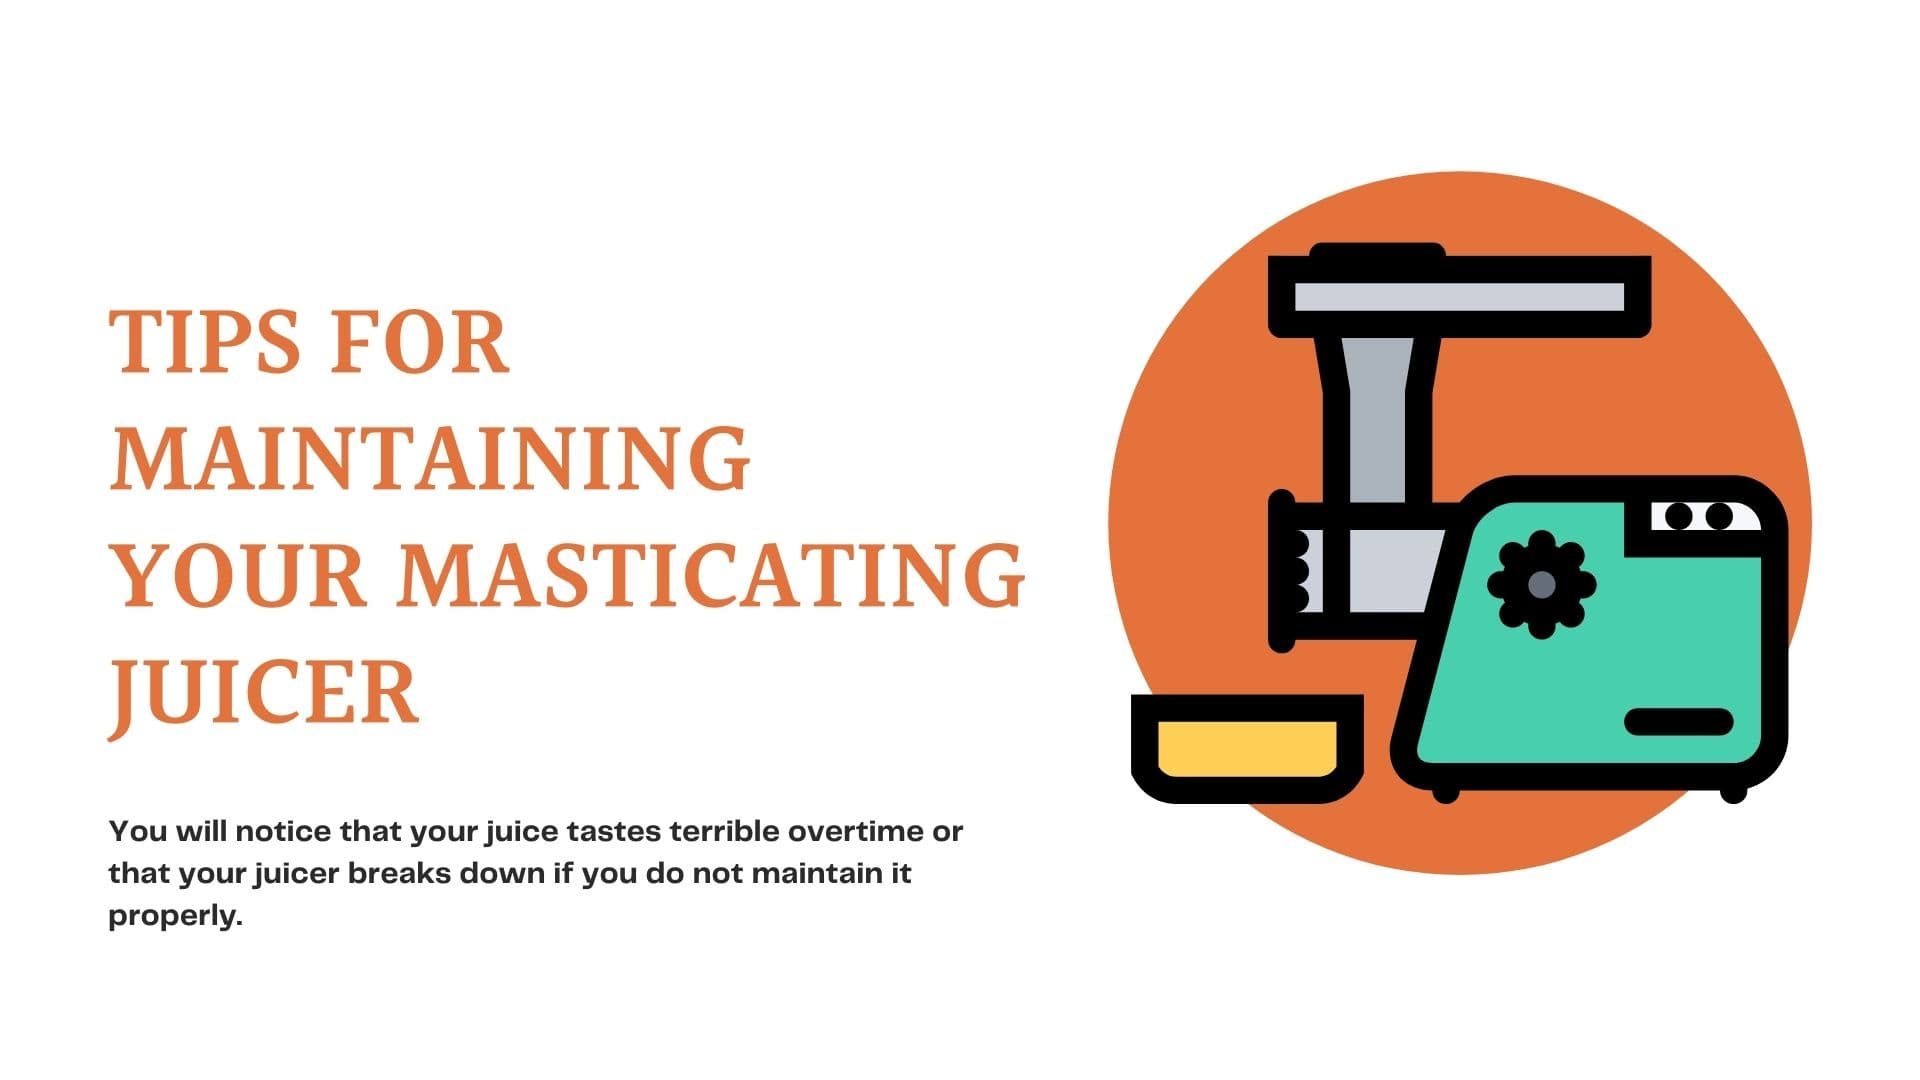 Tips for Maintaining your Masticating Juicer